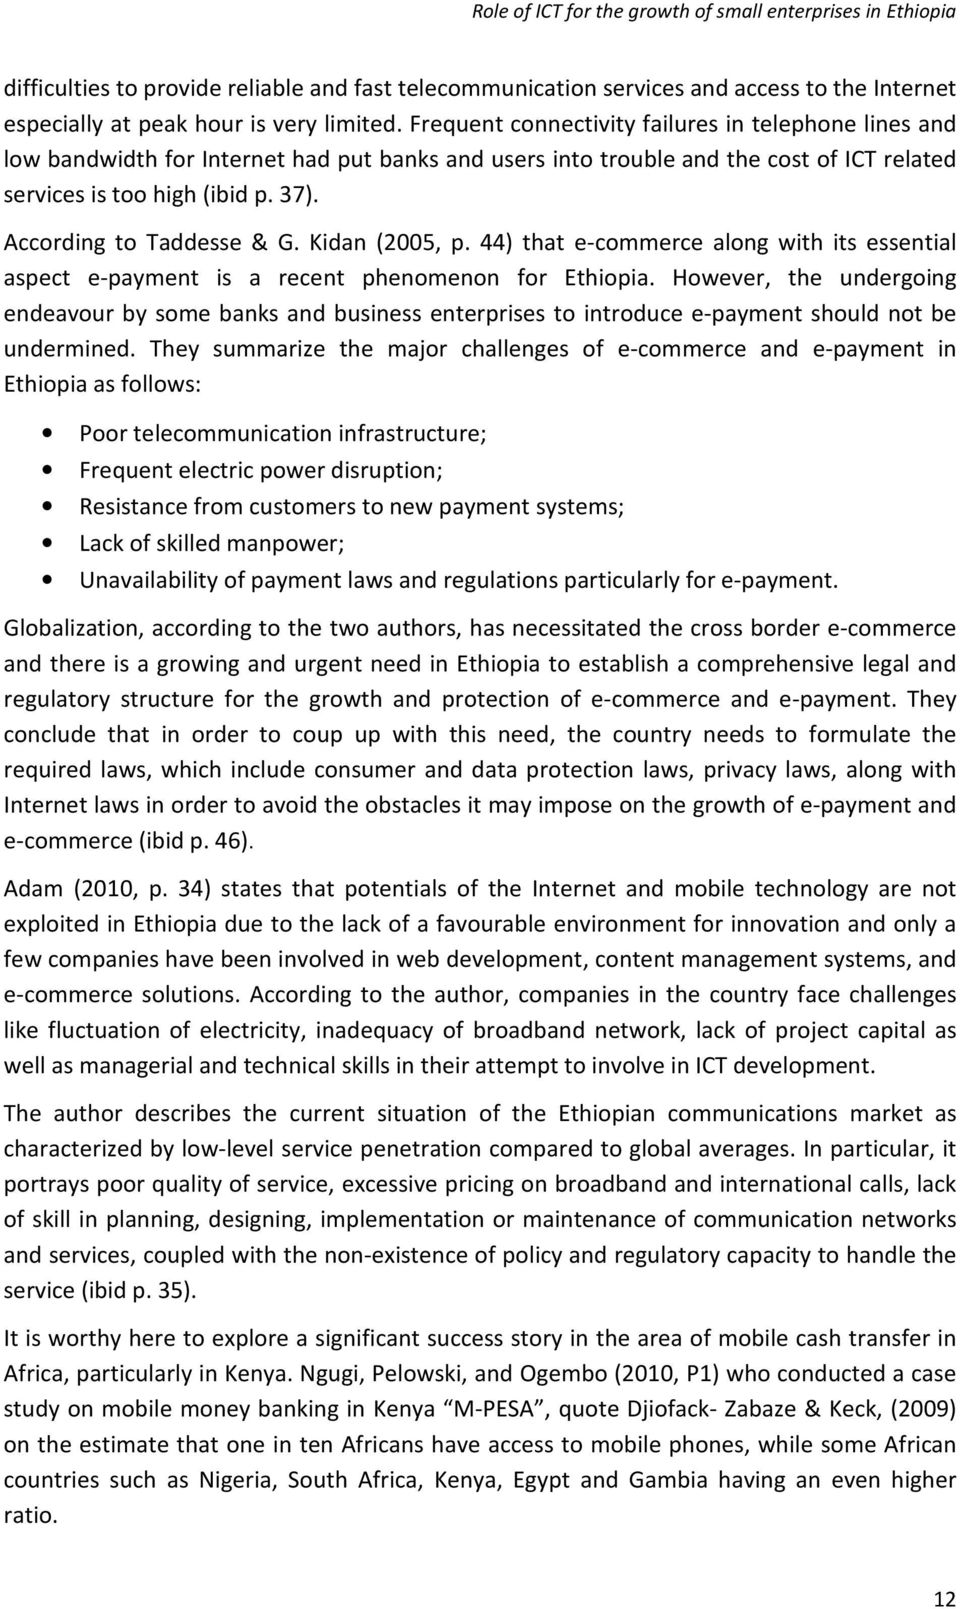 According to Taddesse & G. Kidan (2005, p. 44) that e-commerce along with its essential aspect e-payment is a recent phenomenon for Ethiopia.